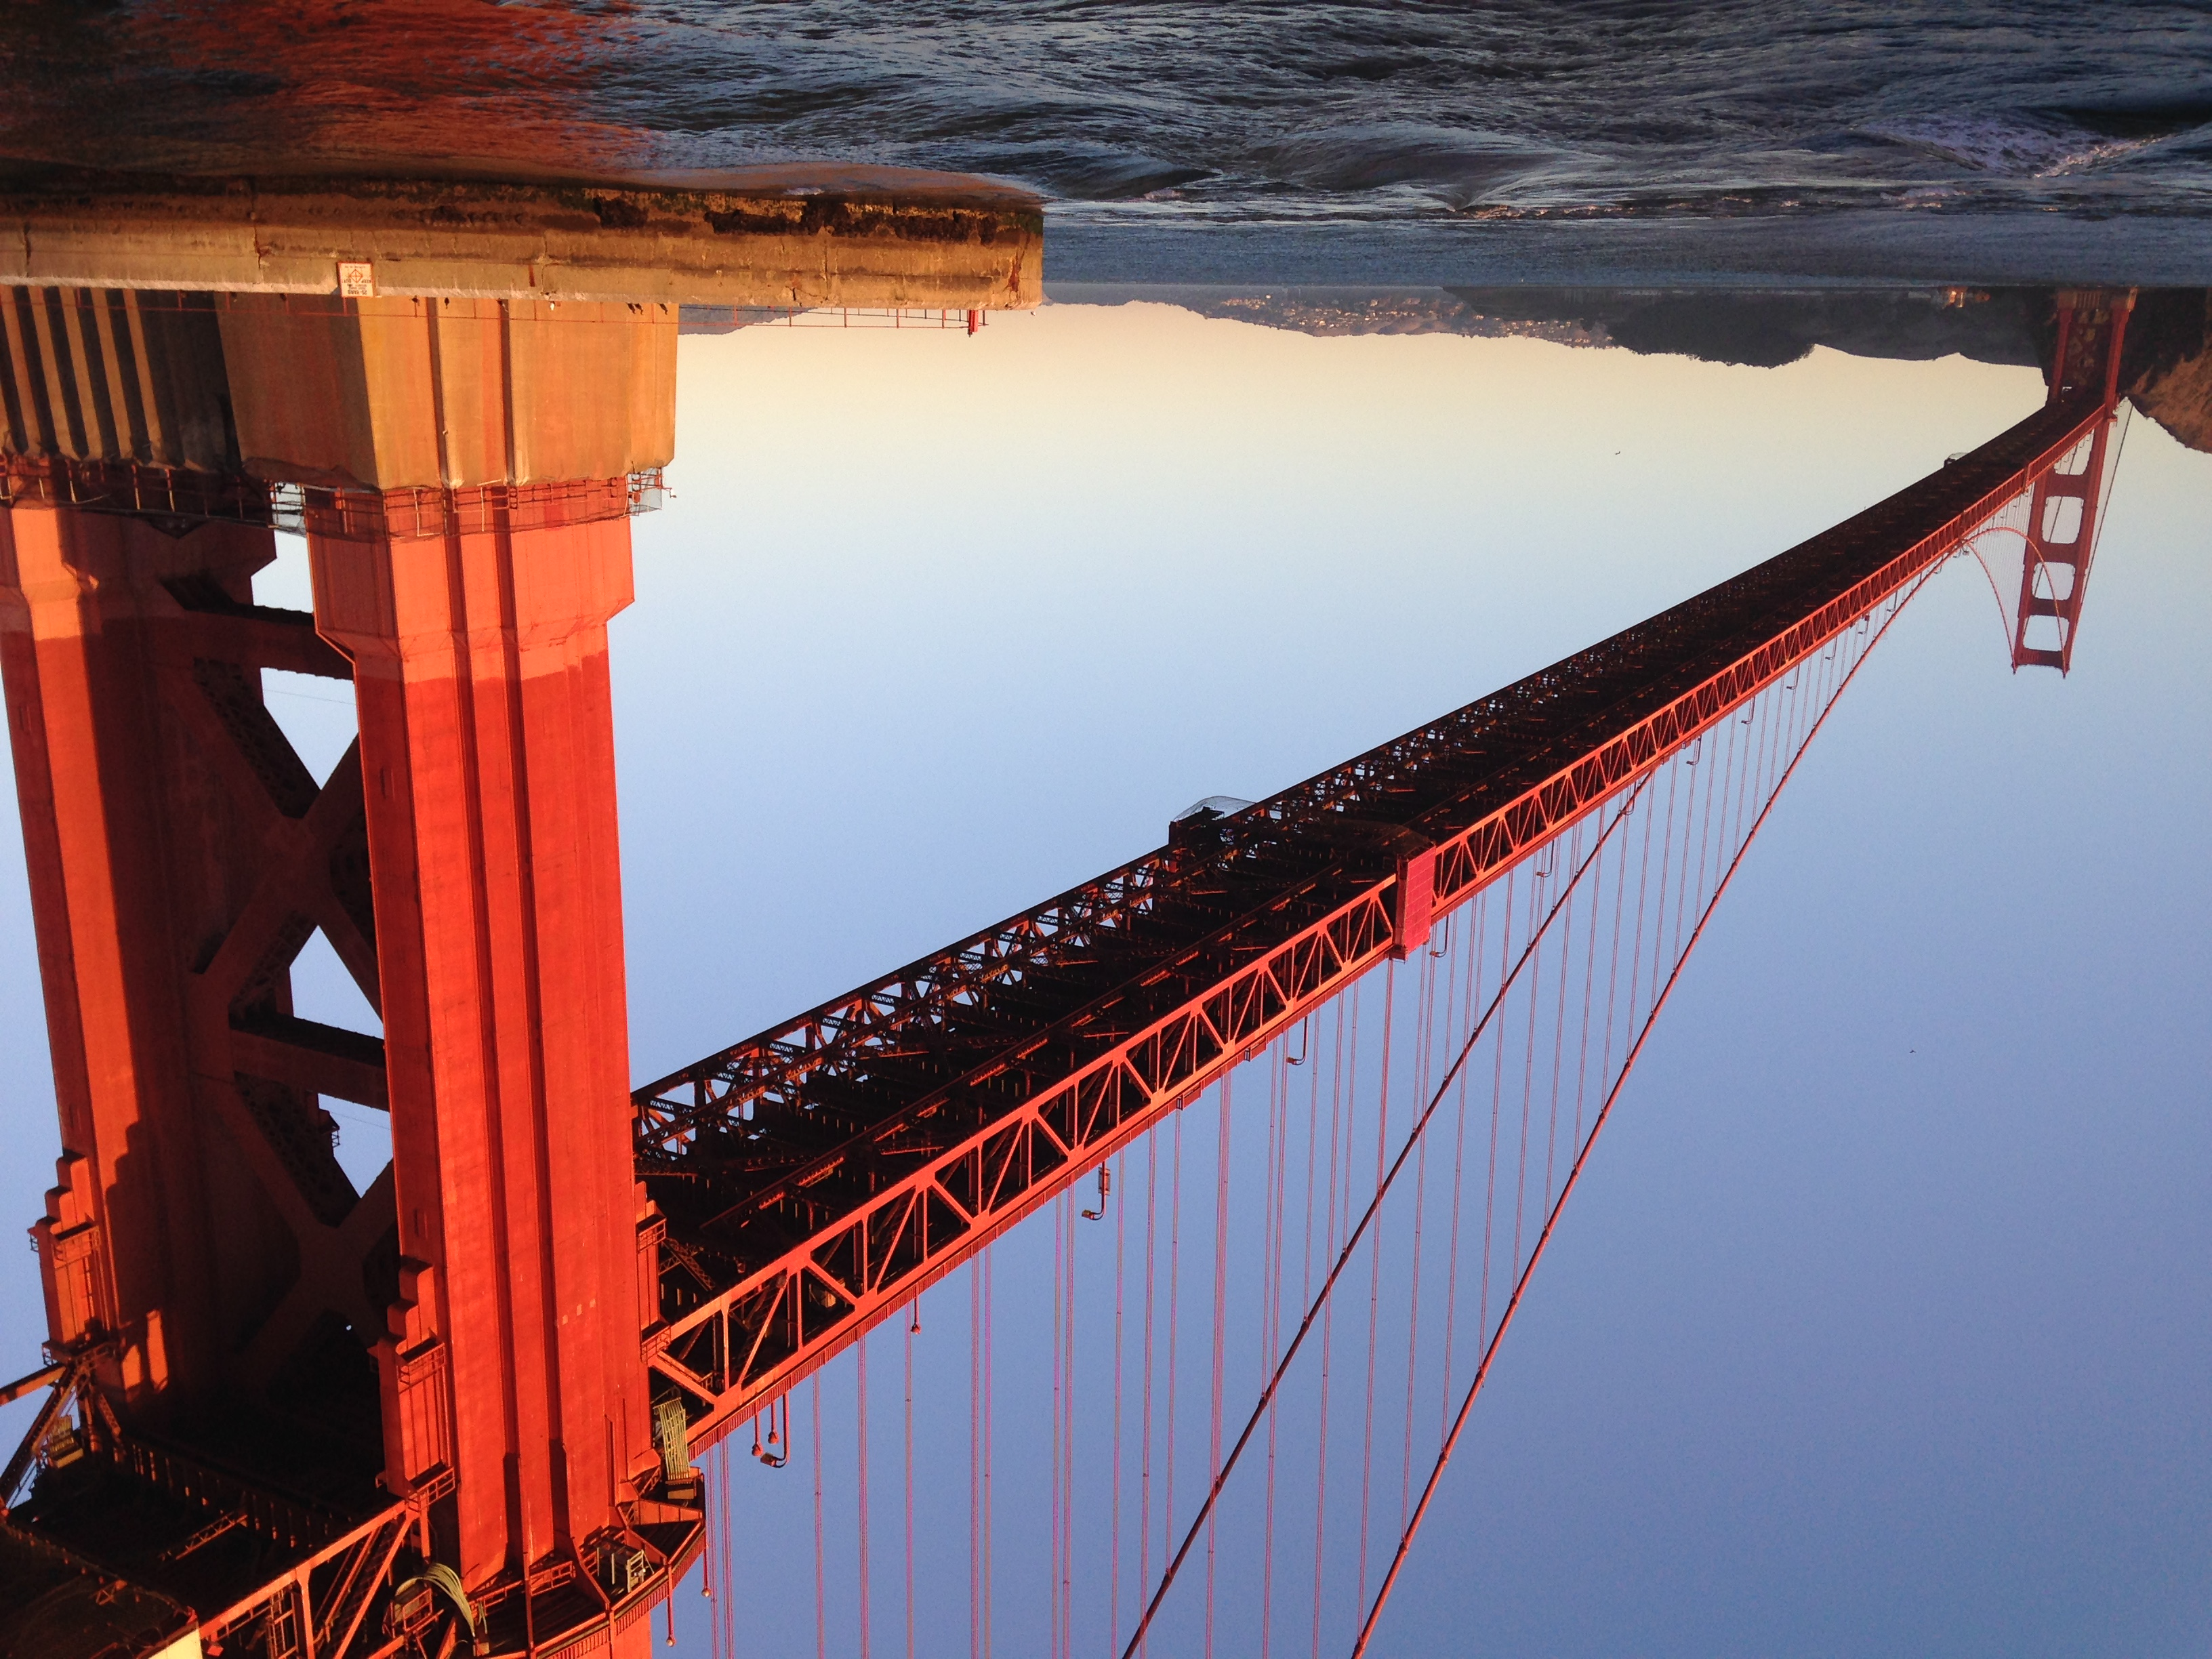 essays about the golden gate bridge The golden gateway 5 pages 1147 words february 2015 saved essays save your essays here so you can locate them quickly topics in this paper.